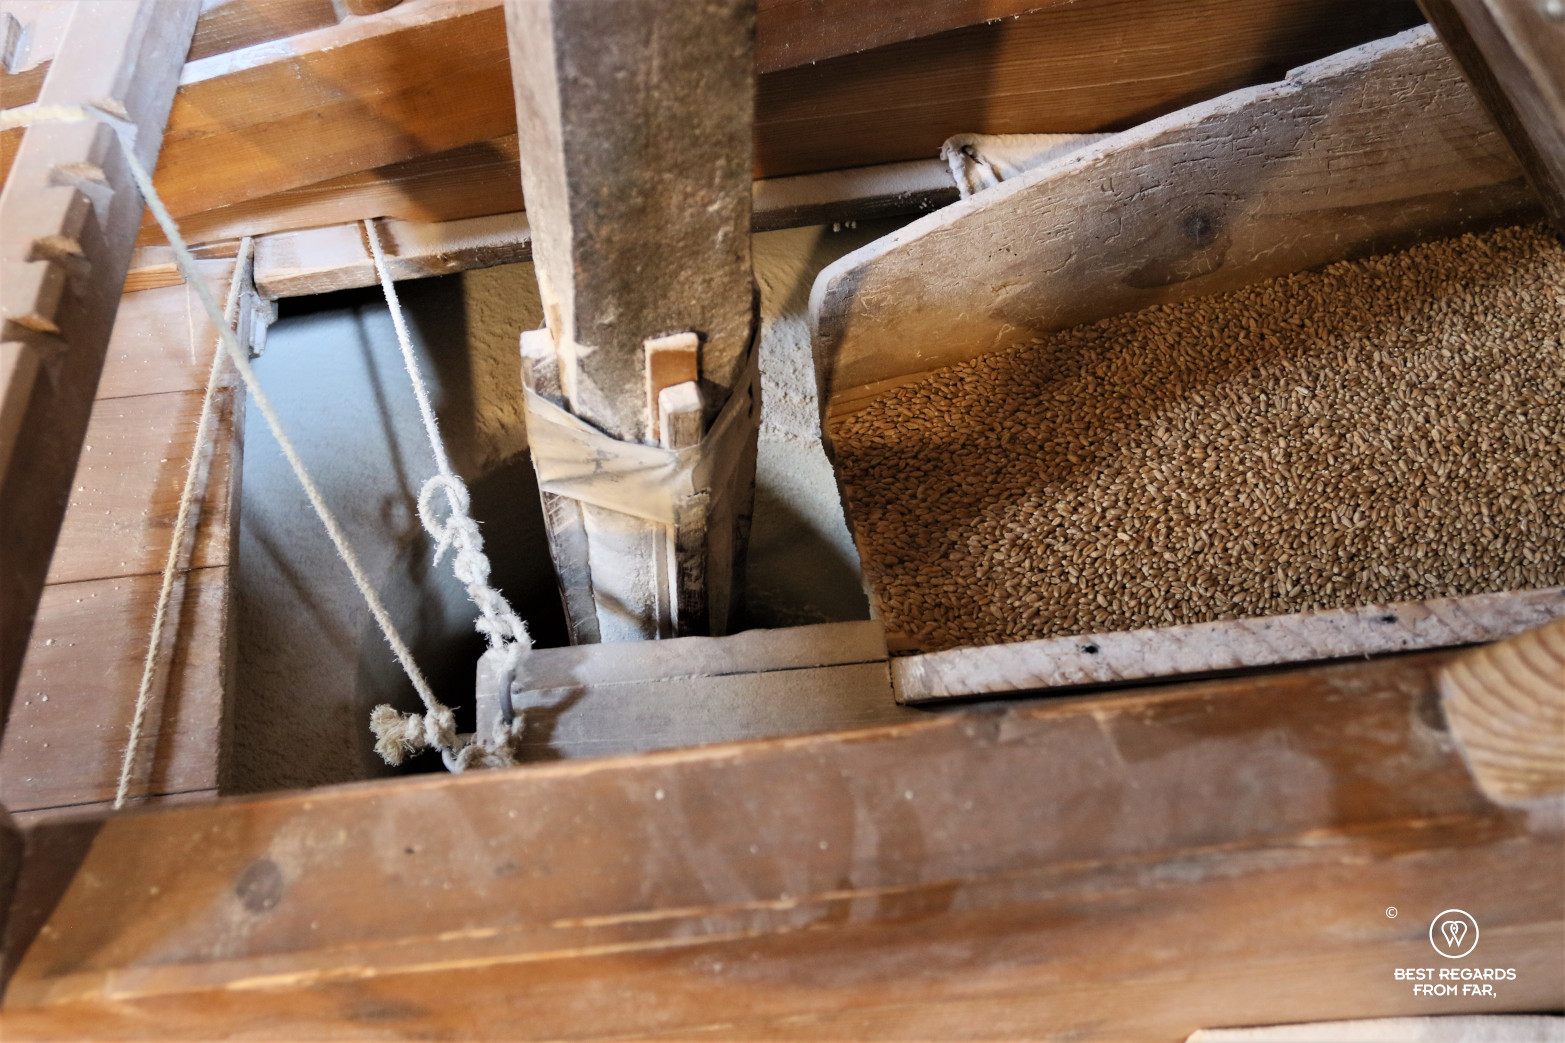 Grinding wheat at the windmill de Roos, Delft, The Netherlands